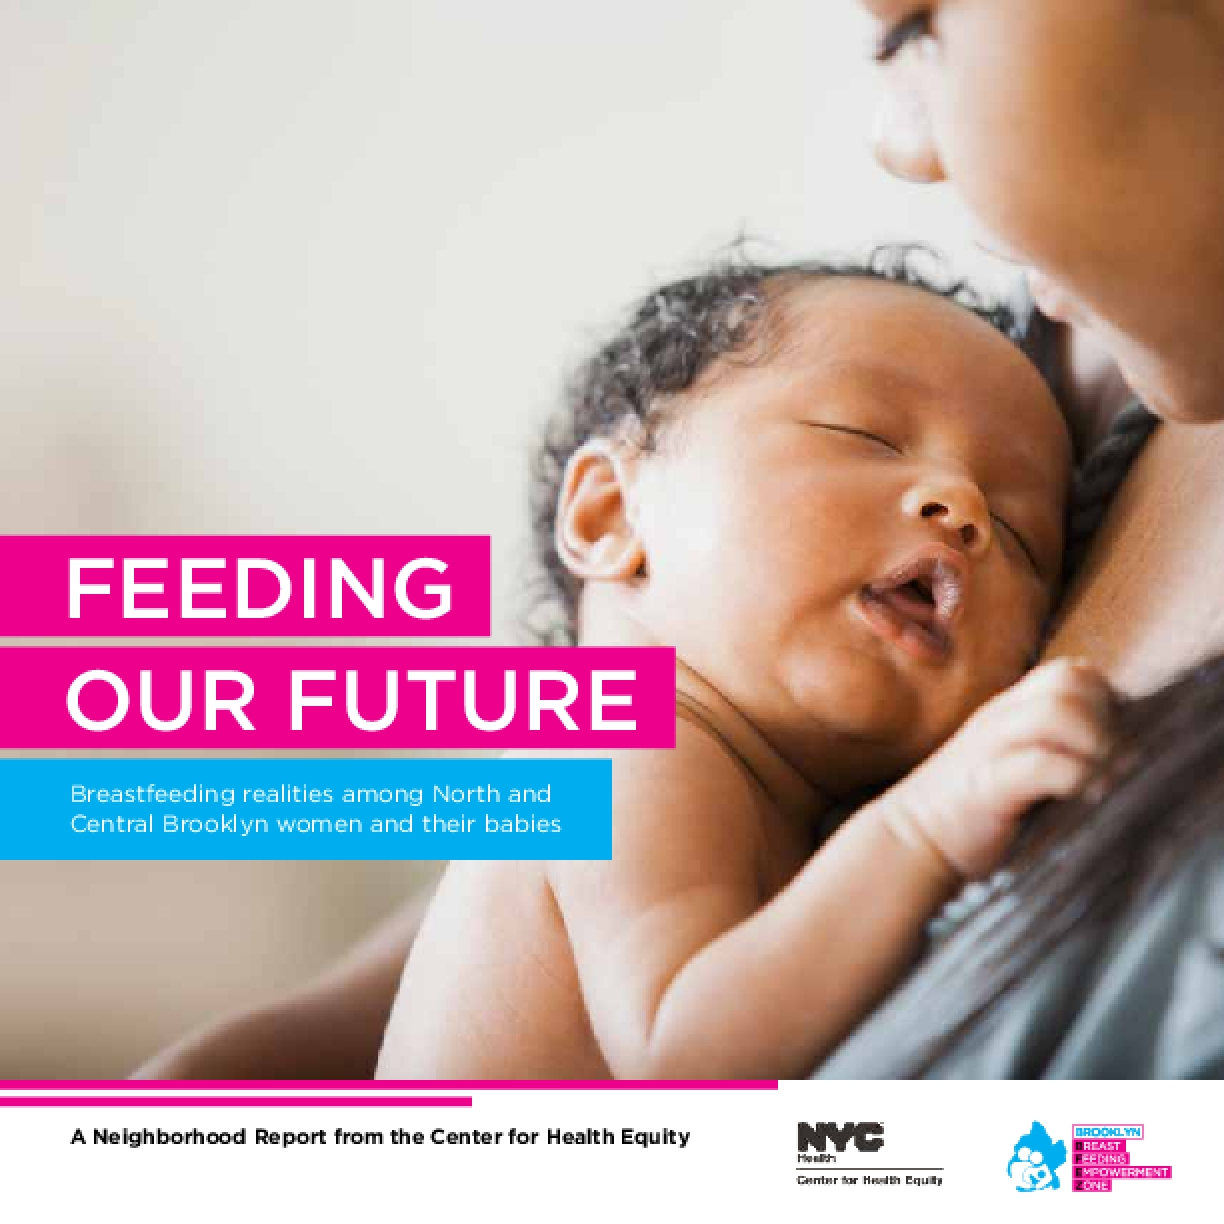 Feeding Our Future: Breastfeeding Realities Among North and Central Brooklyn Women and Their Babies